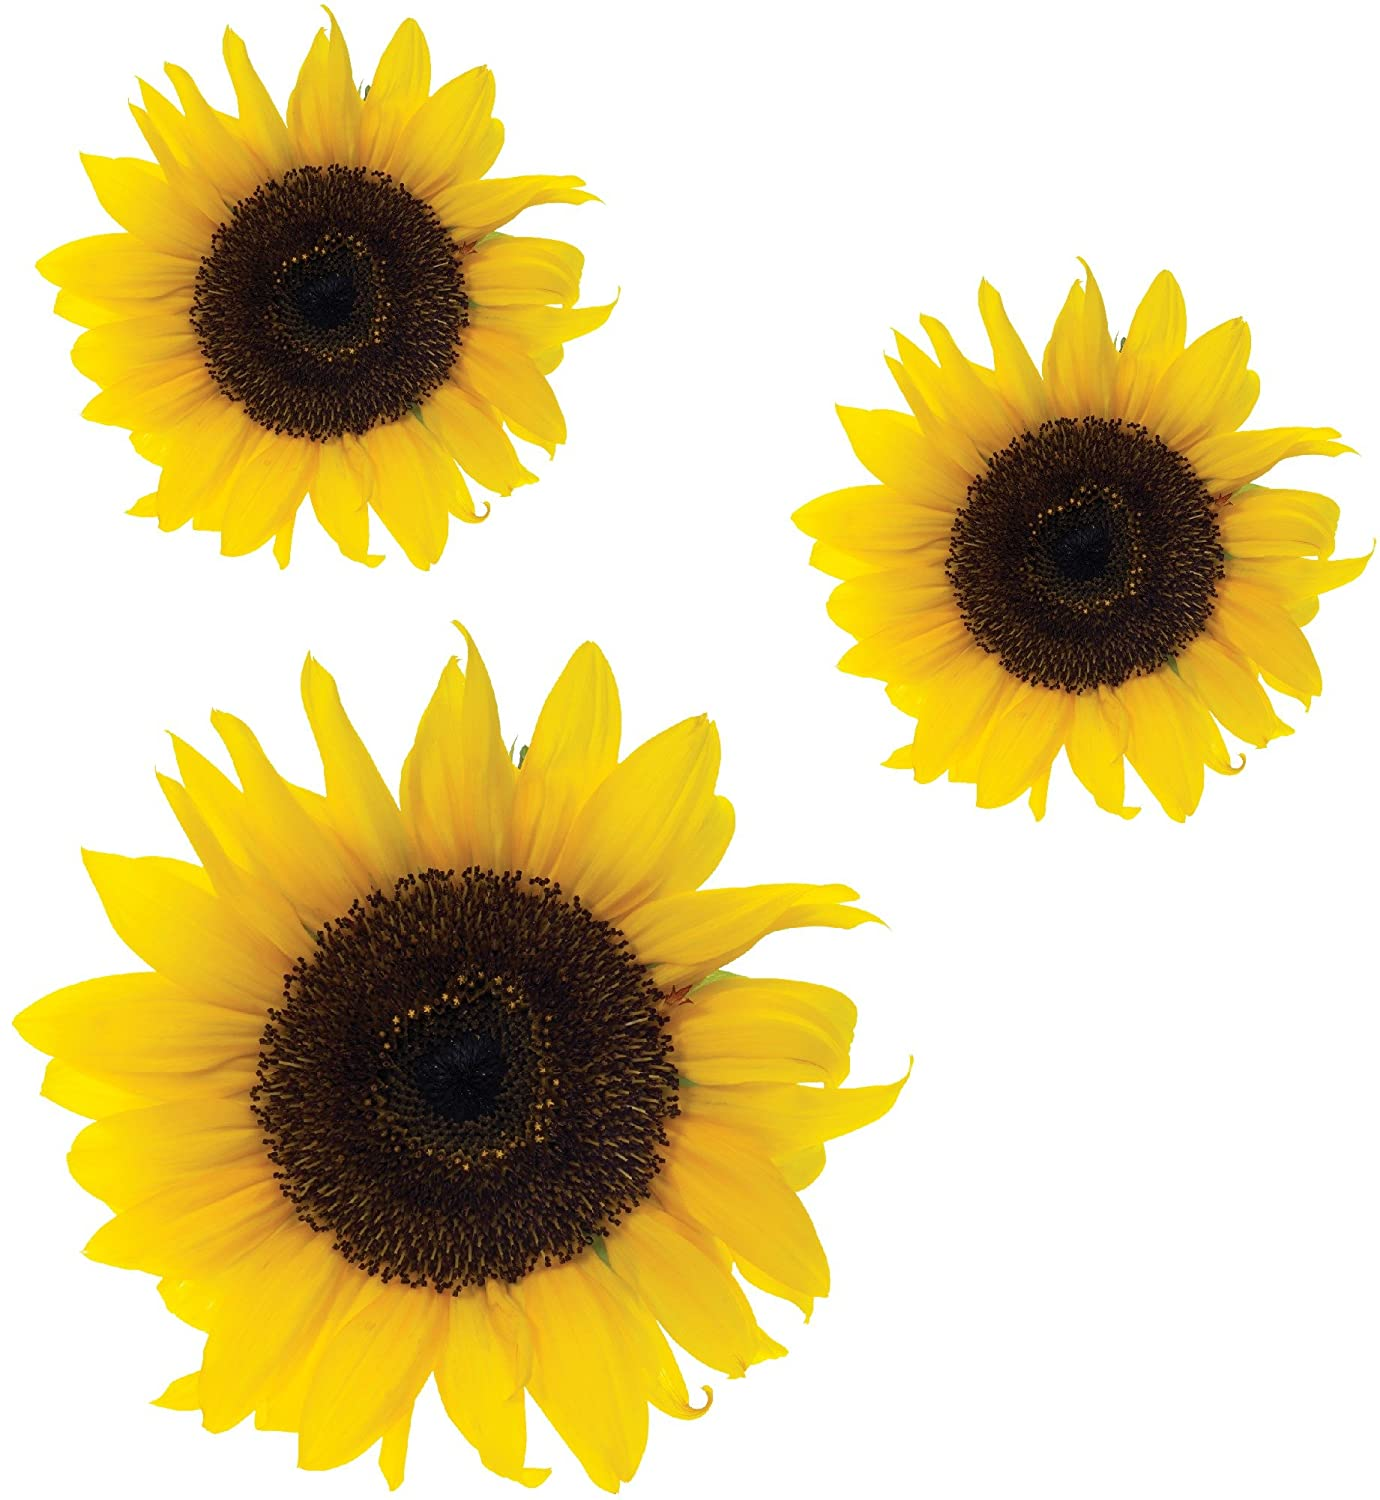 sunflower flower stickers car van wall art laptop wheelie bin sunflower flower stickers car van wall art laptop wheelie bin fridge decals amazon co uk kitchen home